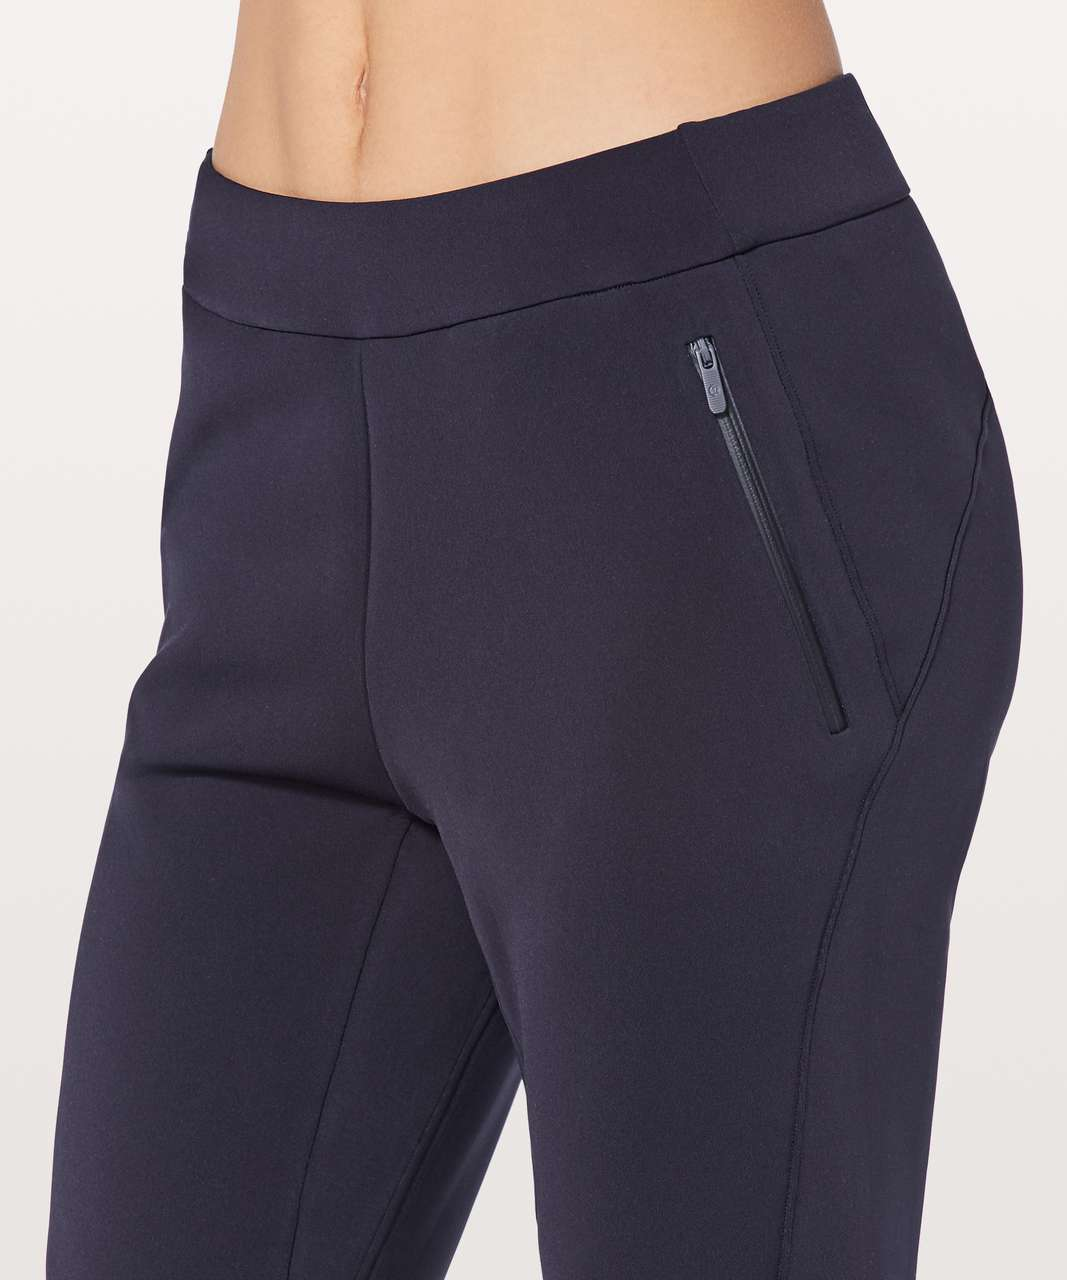 "Lululemon Tech Lux Pant 27.5"" - Midnight Navy"